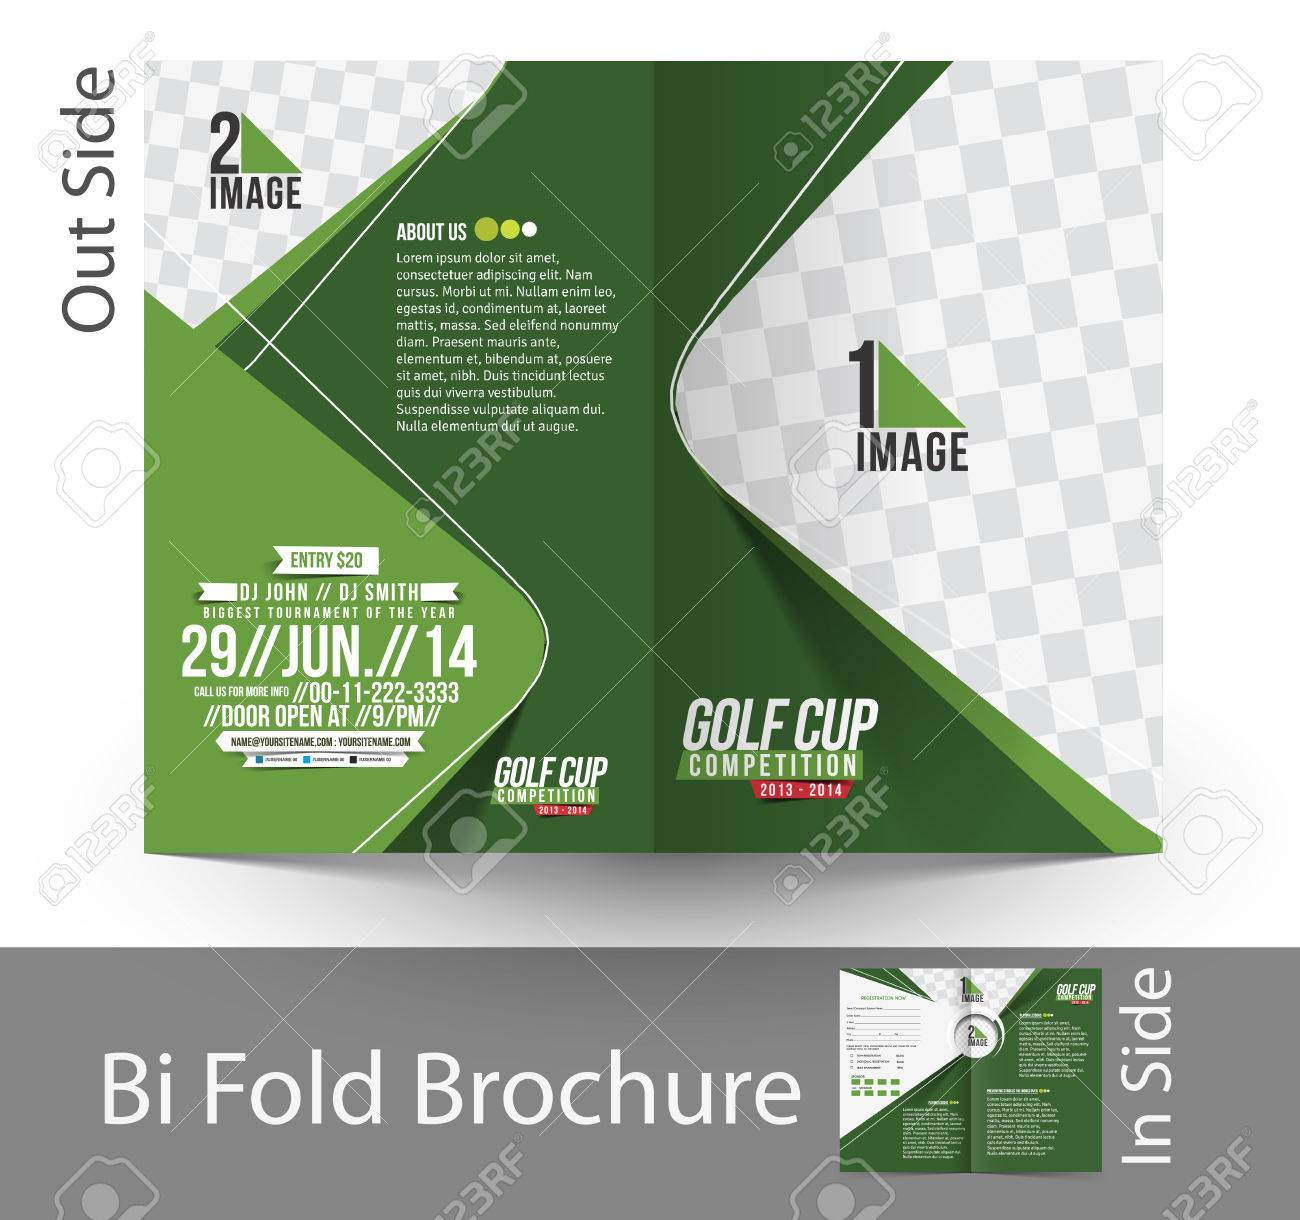 Delightful Golf Tournament Bi Fold Mock Up U0026 Brochure Design Stock Vector   38118236